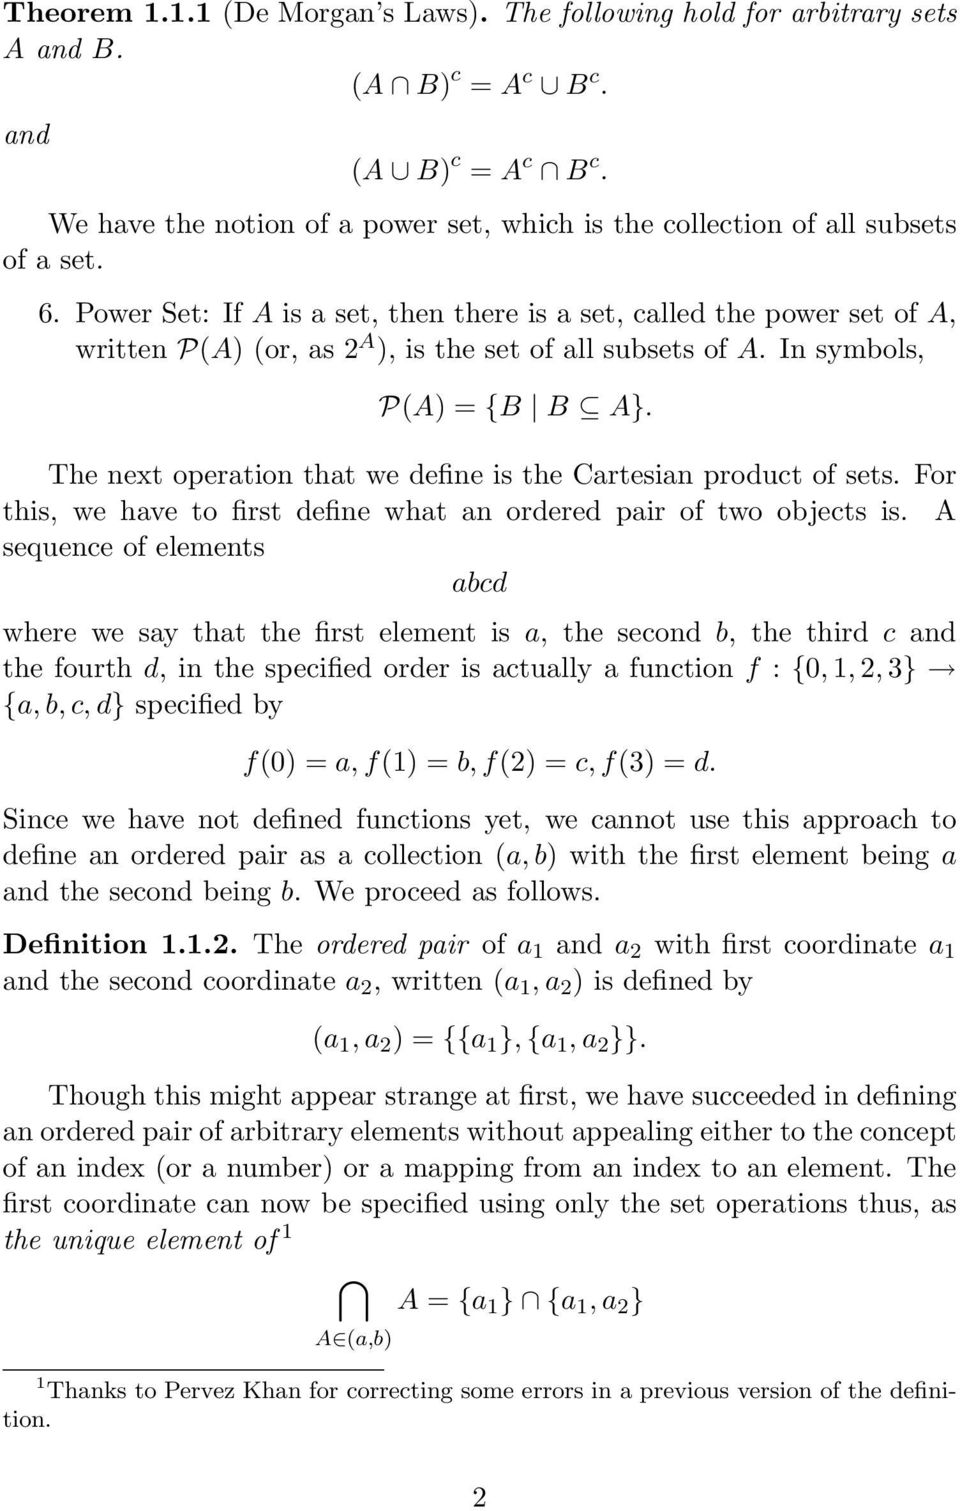 Power Set: If A is a set, then there is a set, called the power set of A, written P(A) (or, as 2 A ), is the set of all subsets of A. In symbols, P(A) = {B B A}.